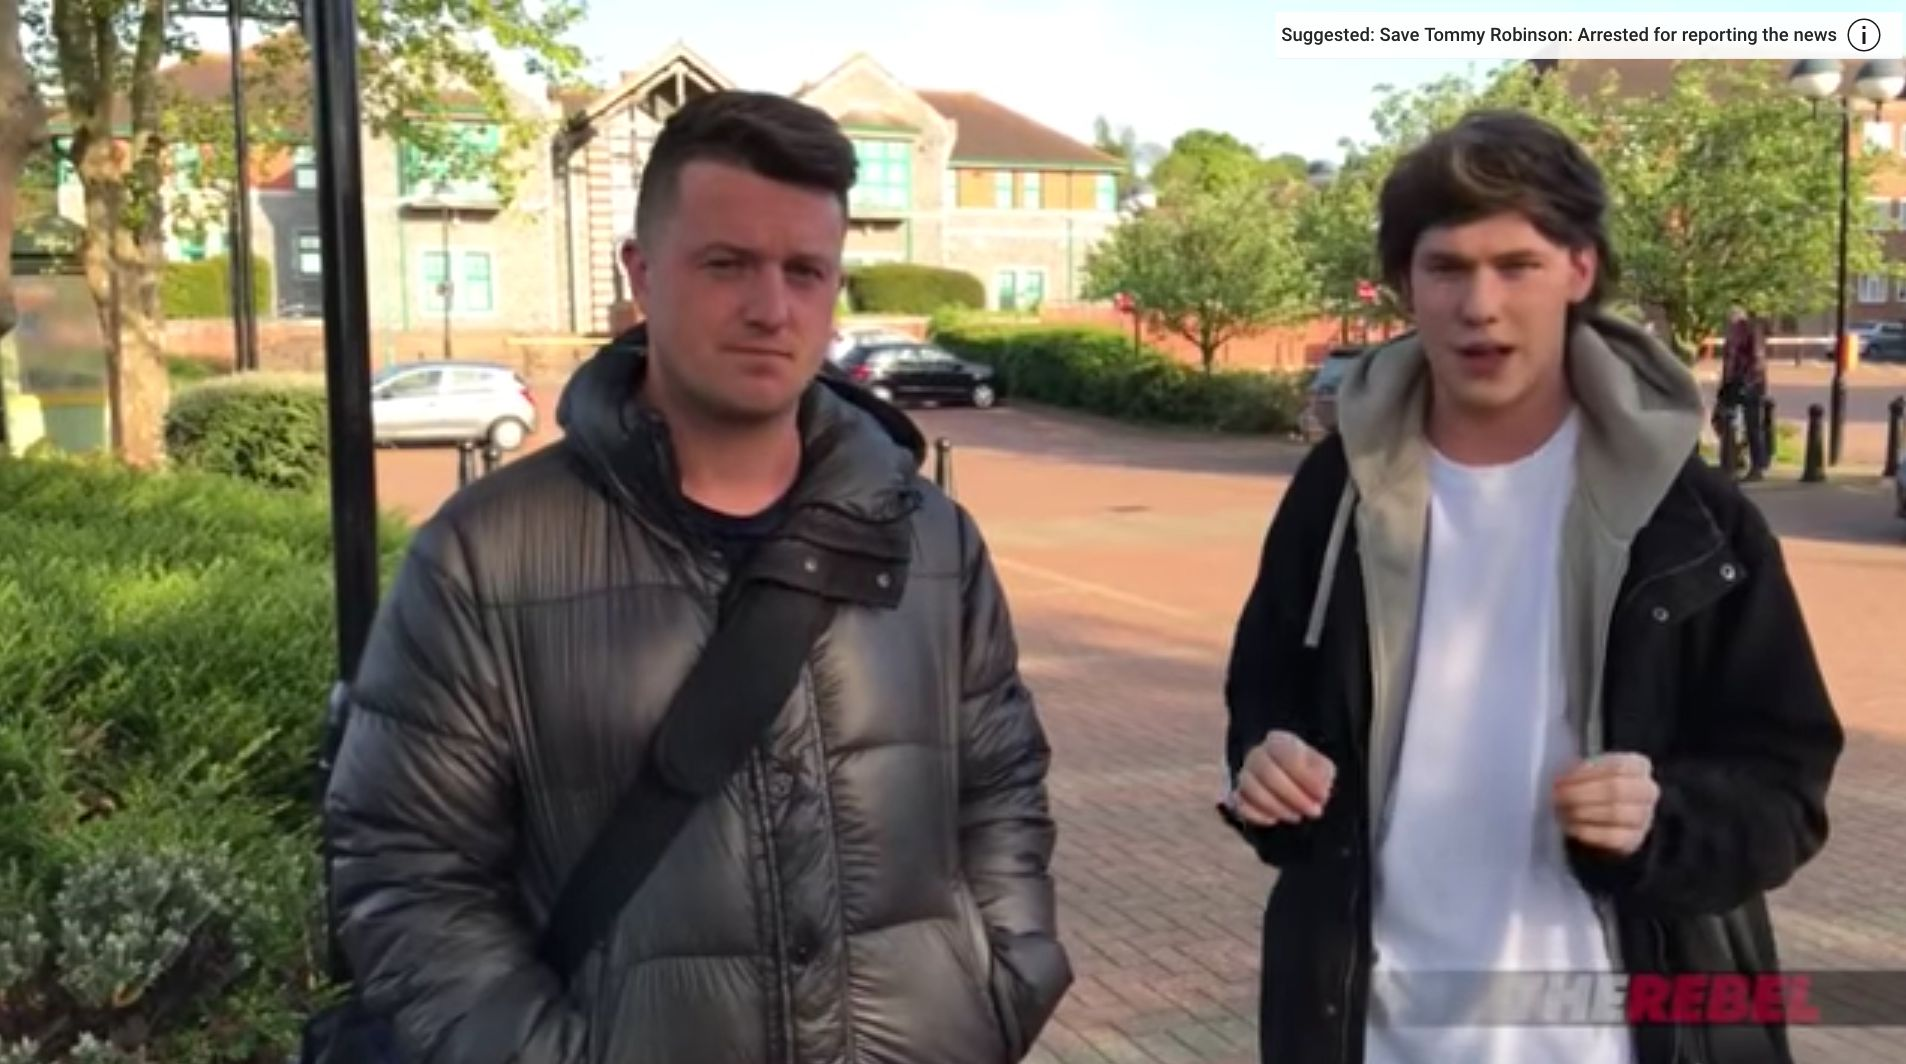 Tommy Robinson's Supporters Are Very Confused About Why He's Been